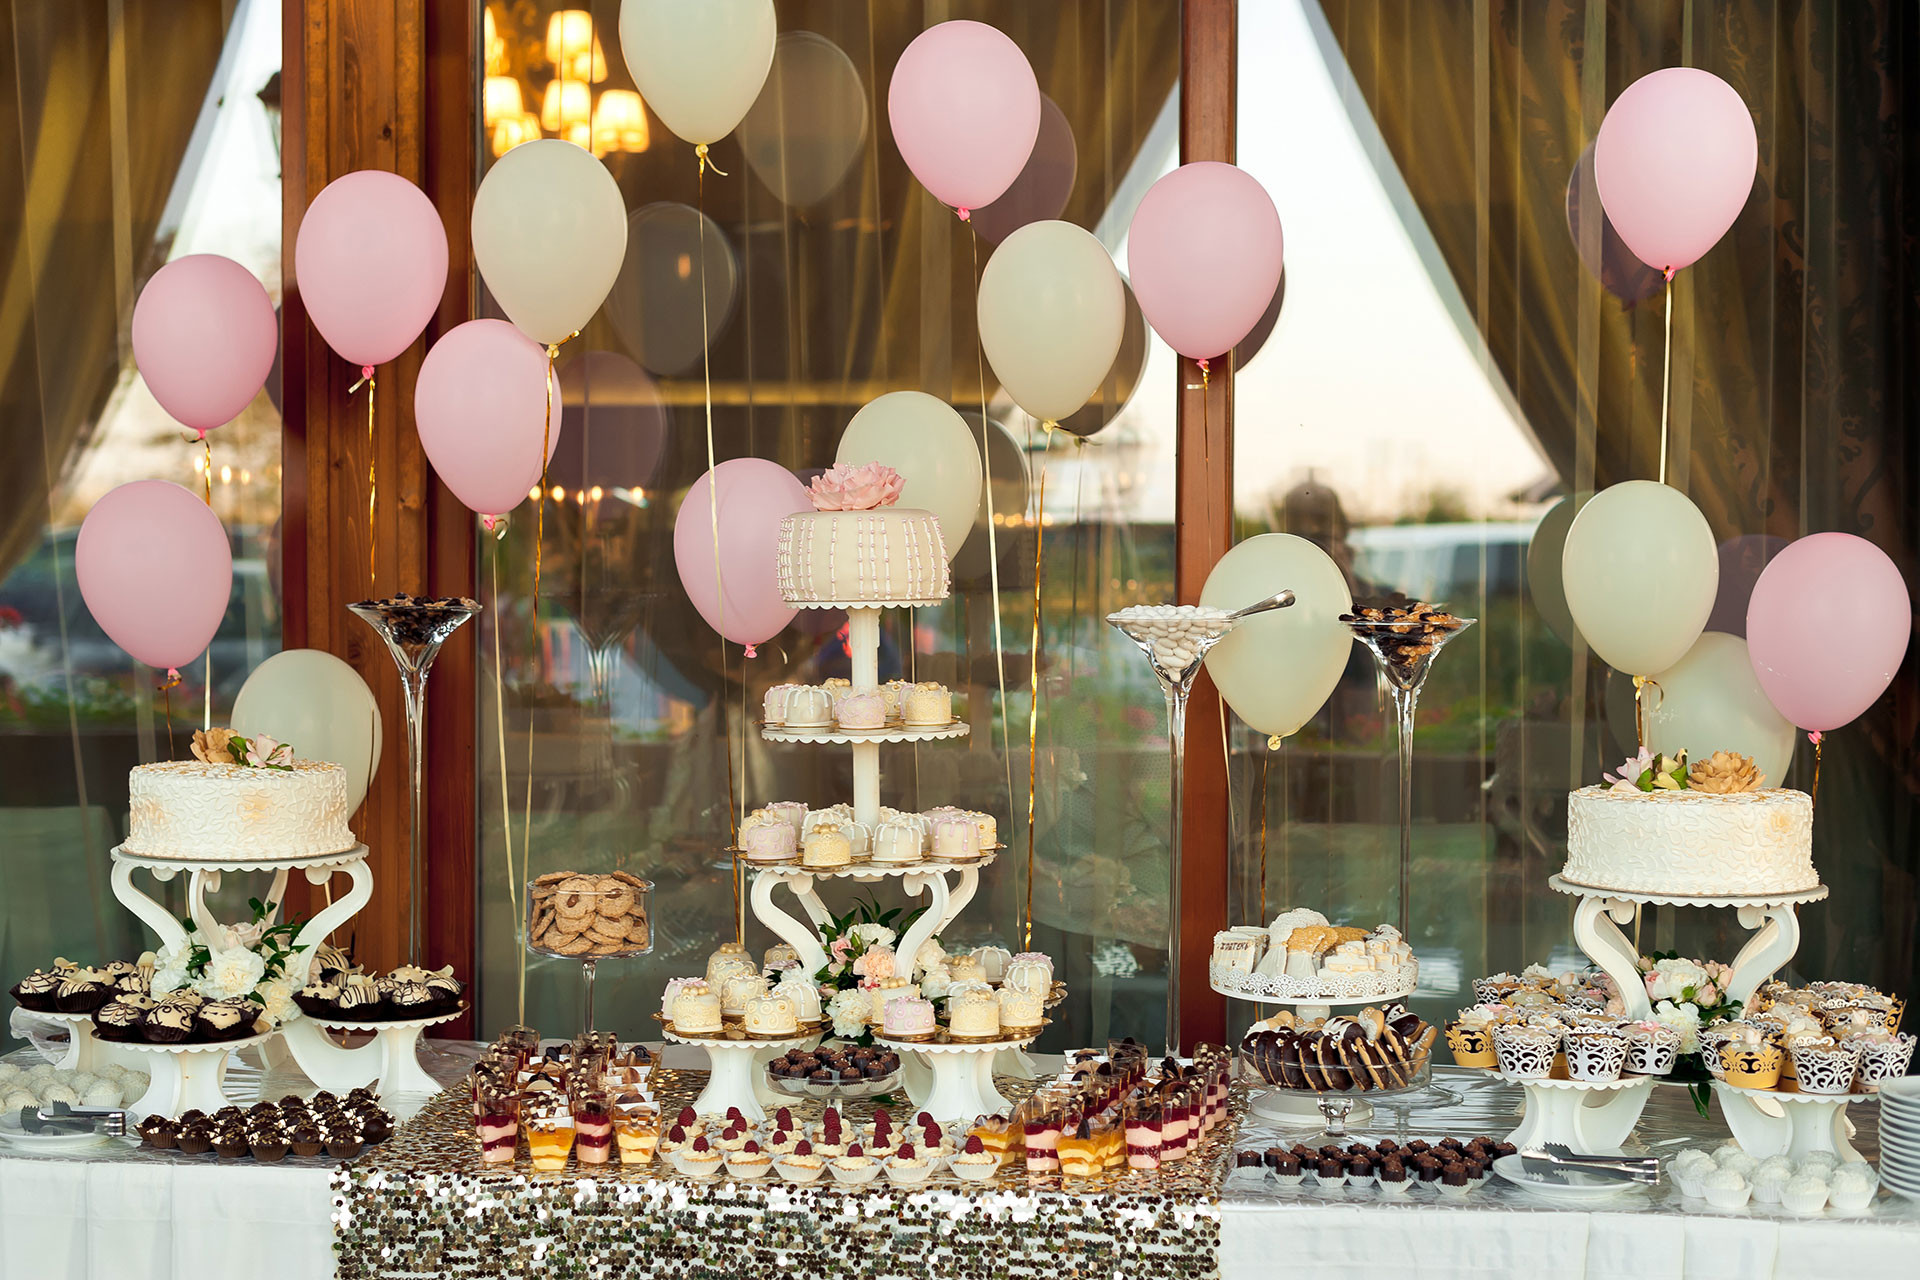 Party Cake Table Decorations